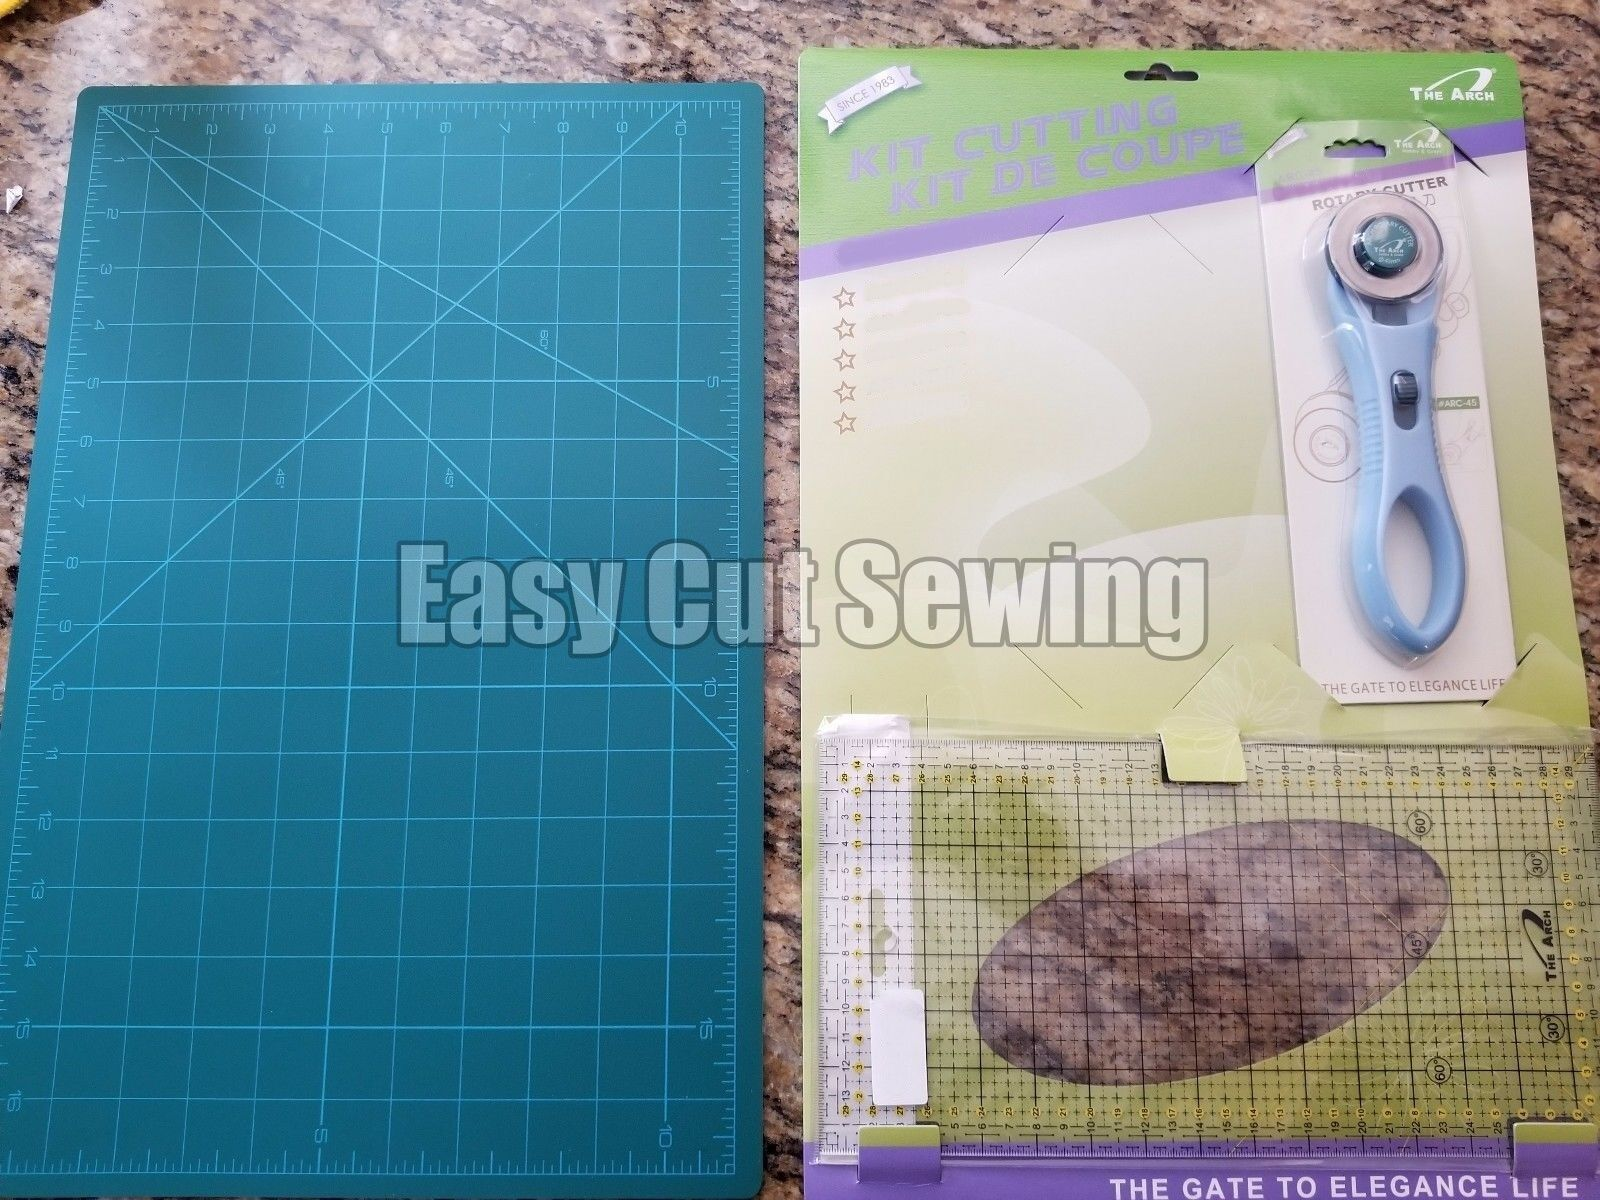 Sewing Cutting Mat Set A3 Quilting Ruler Fabric Crafts 45mm Rotary ... : quilt rulers for rotary cutting - Adamdwight.com